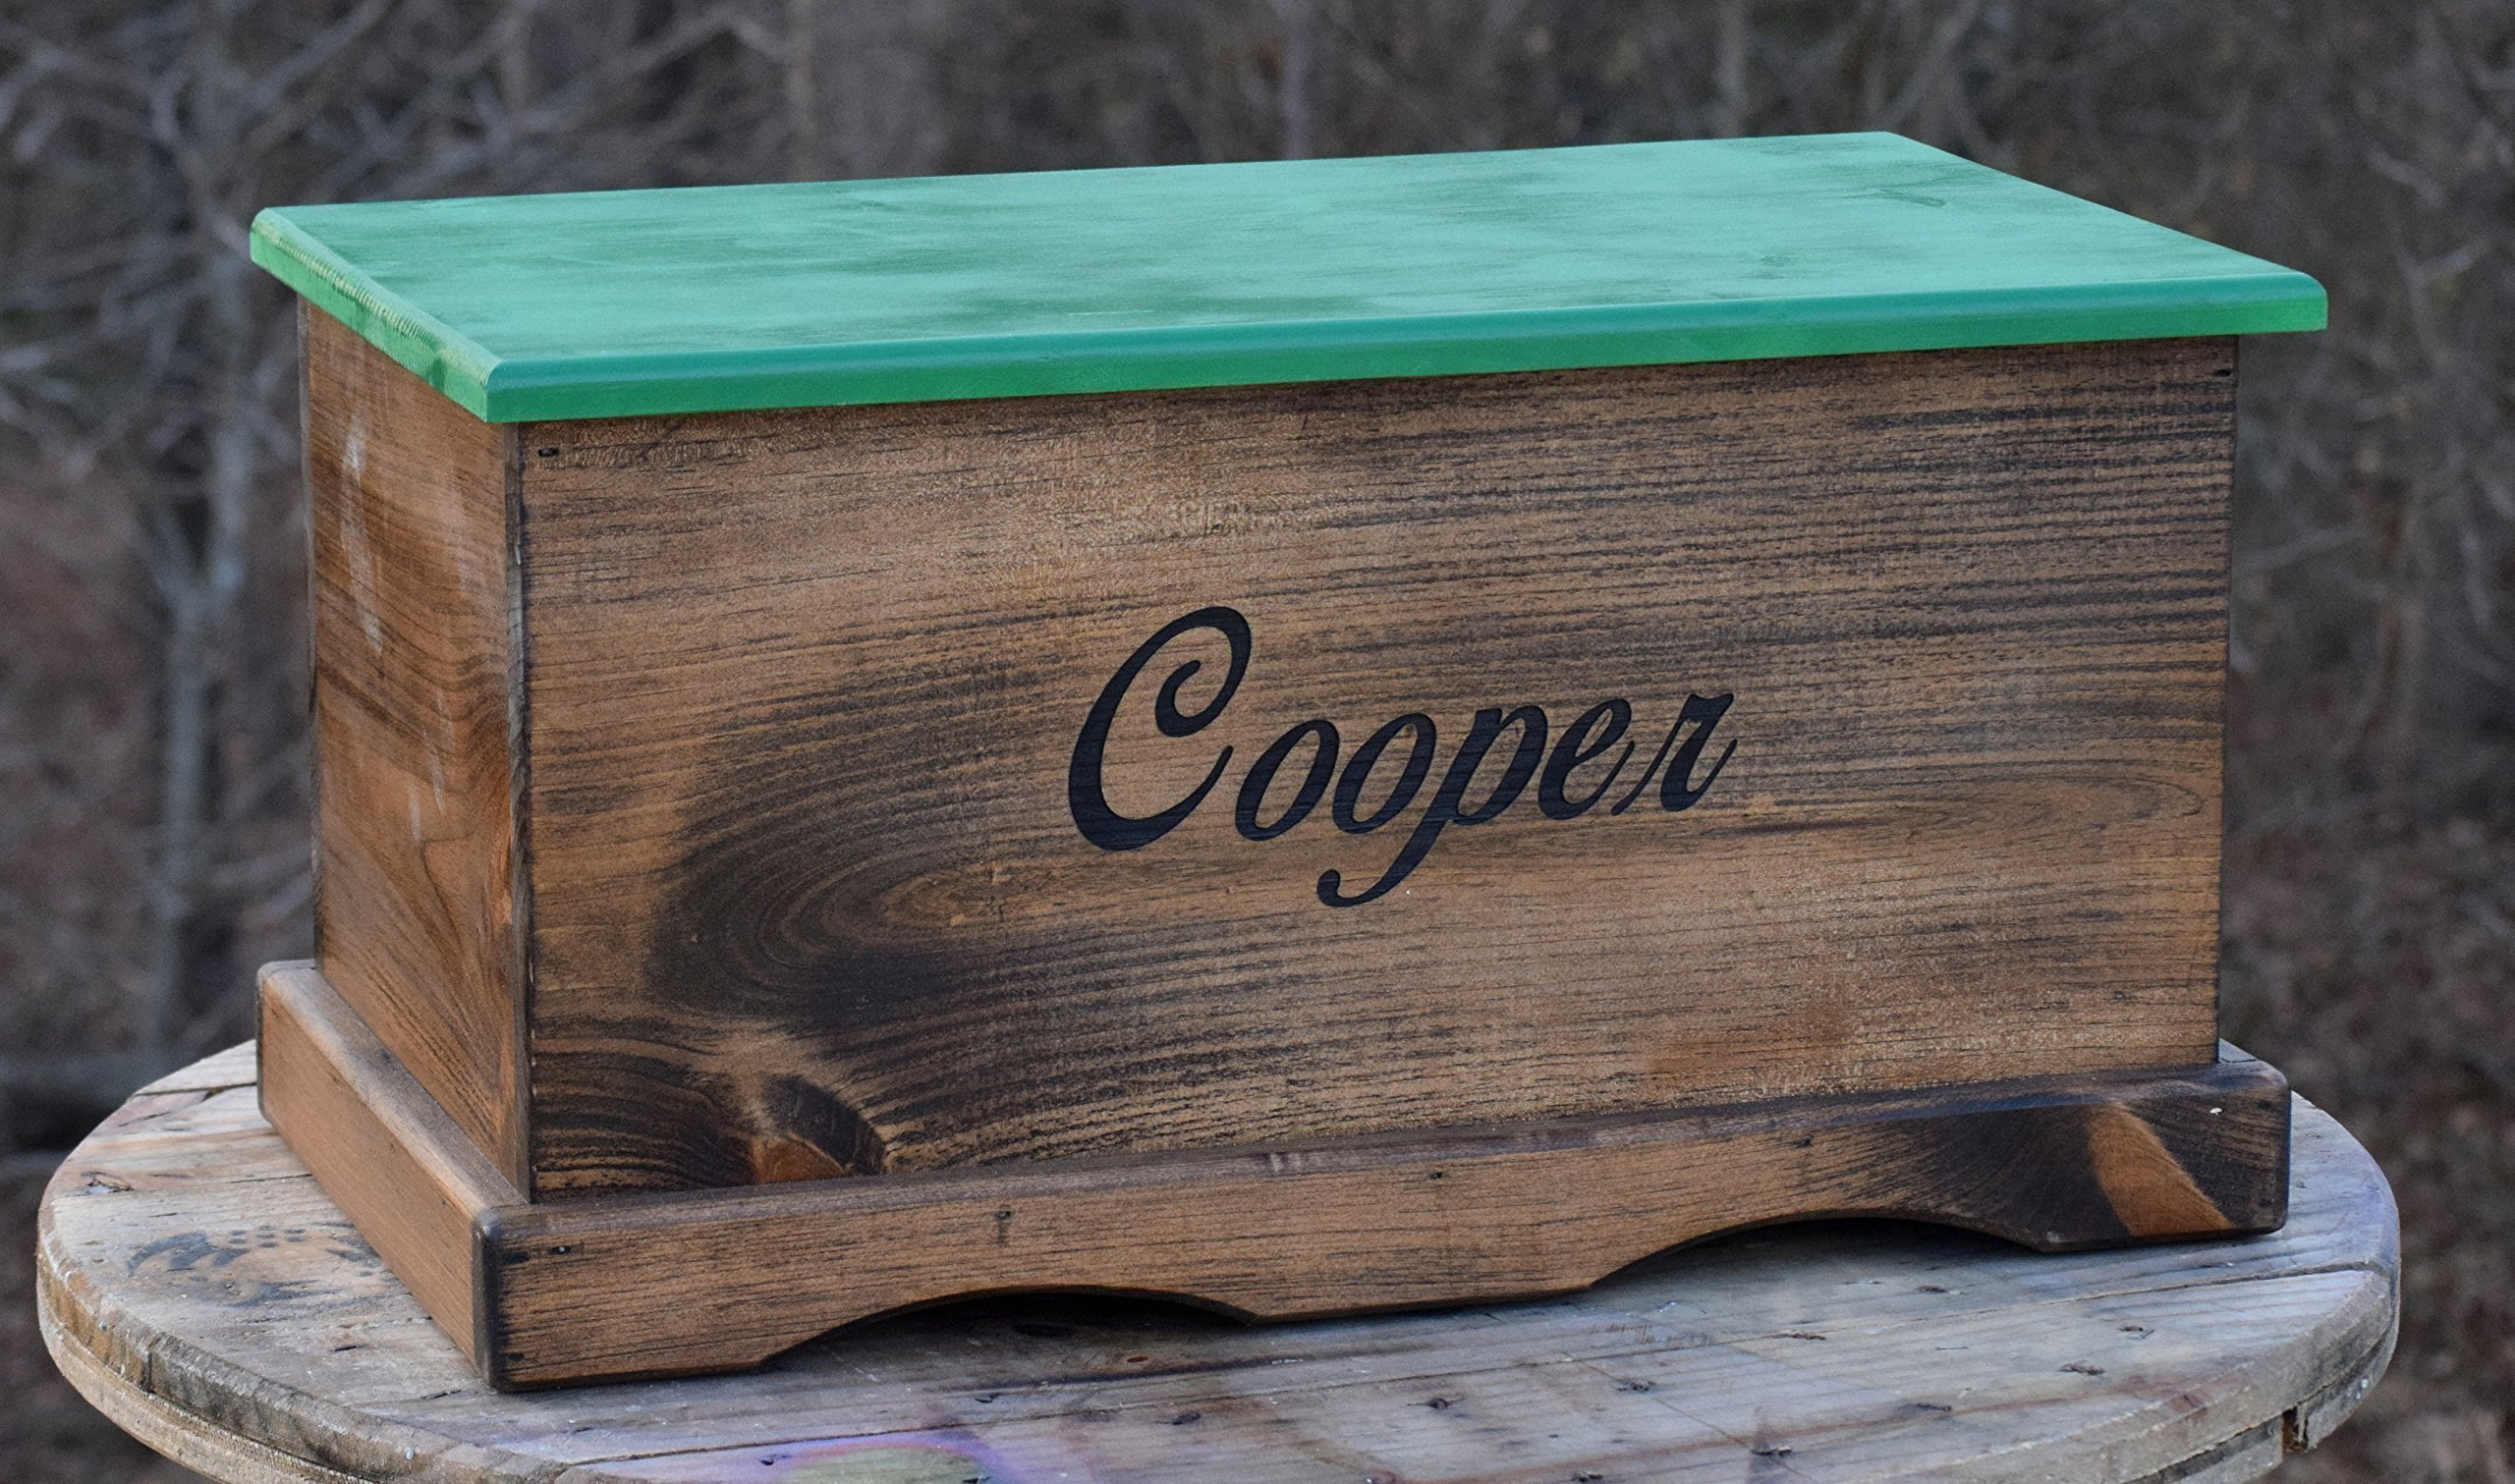 Laser Engraved Personalized Kids Toy Box - Engraved Toy Box - Personalized Toy Box - Children's Toy Box - Kids Memory Box - Gift for Kids